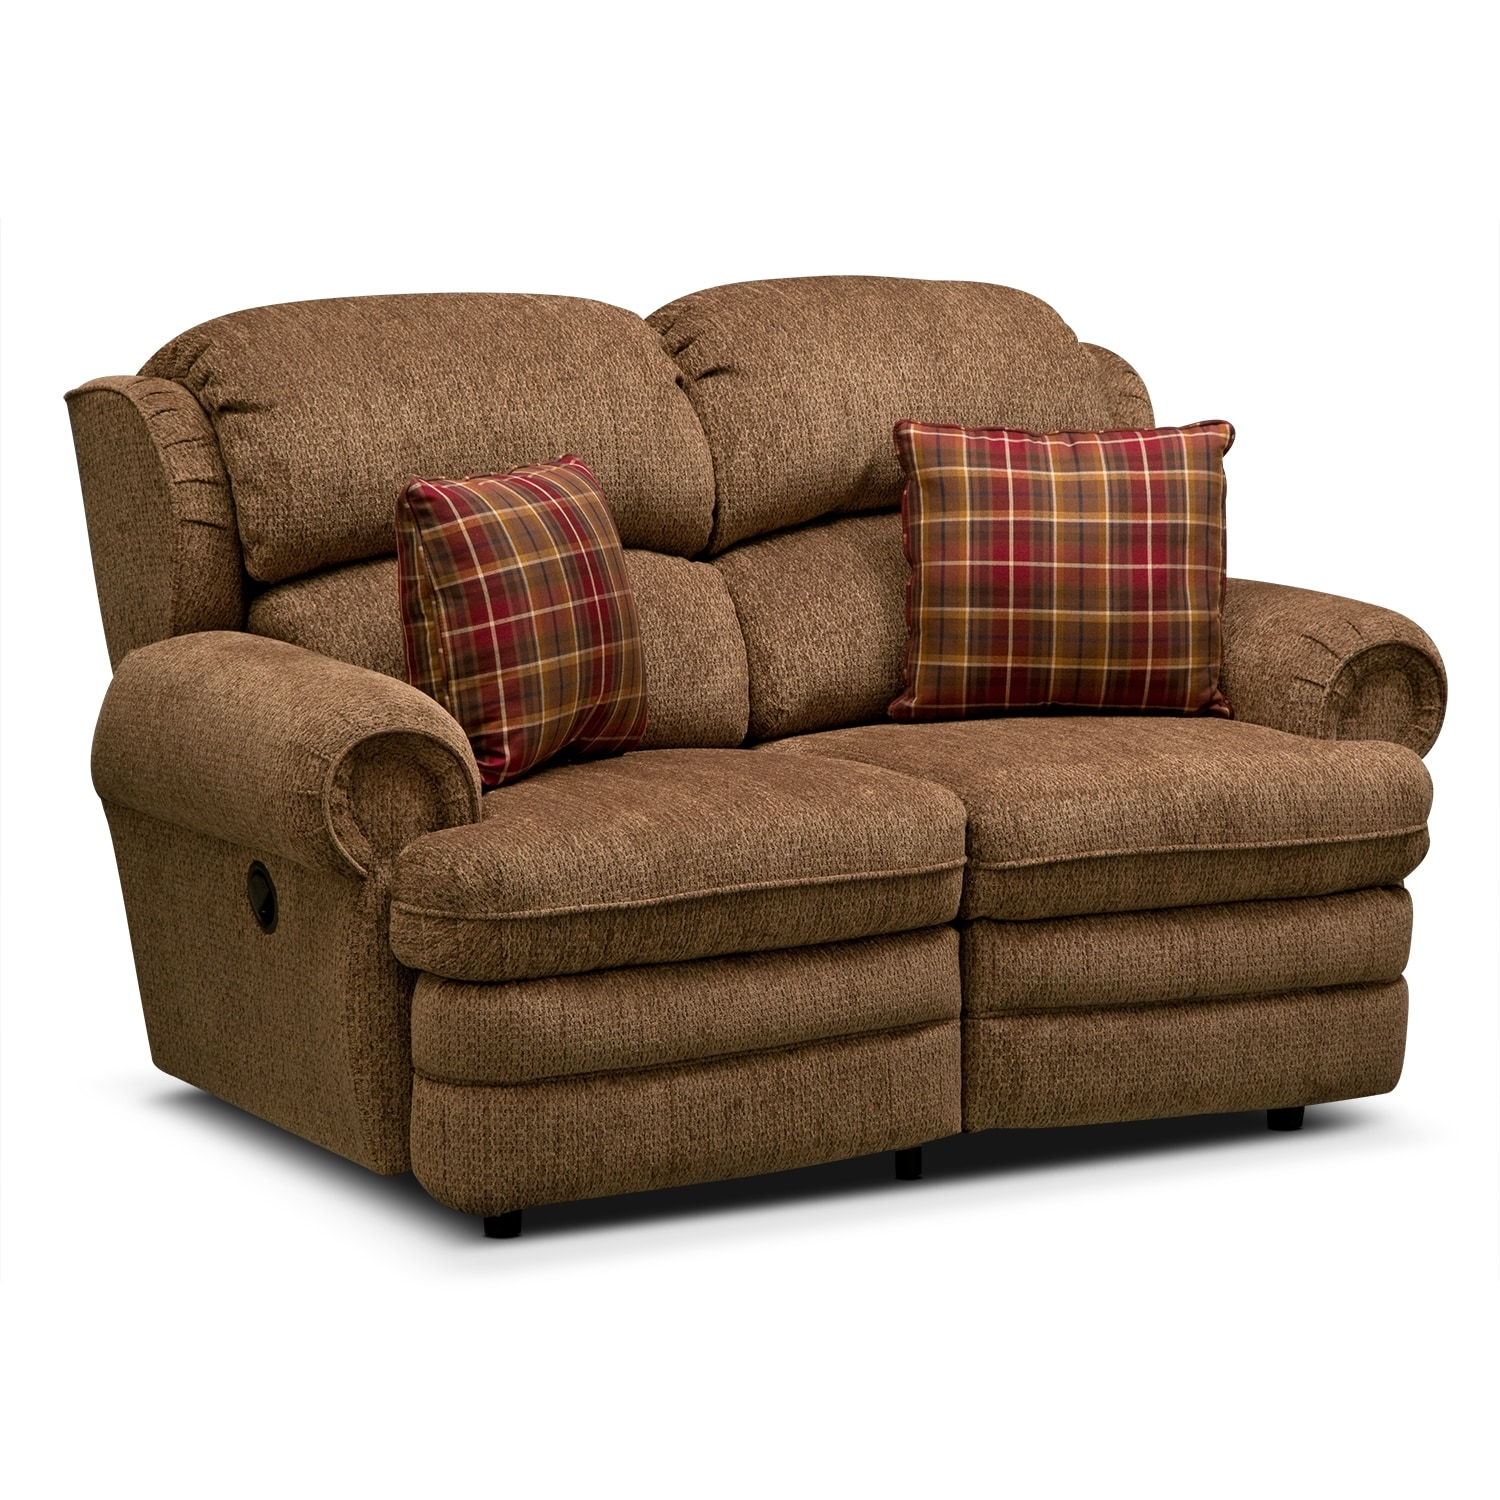 [Addison Reclining Loveseat]